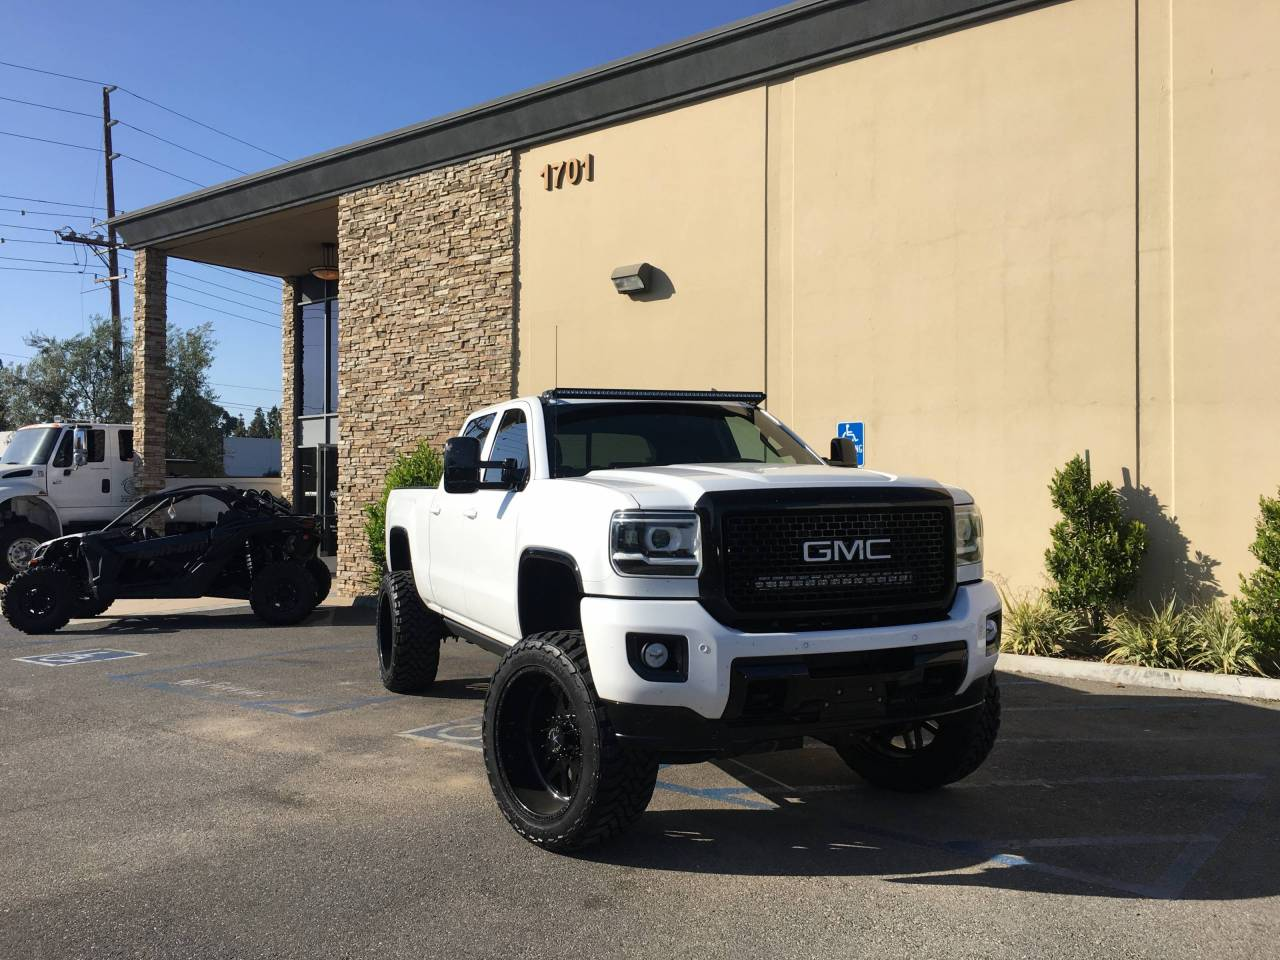 Photo Gallery 2500 3500 White Lifted Chevy Silverado 2017 Gmc Denali